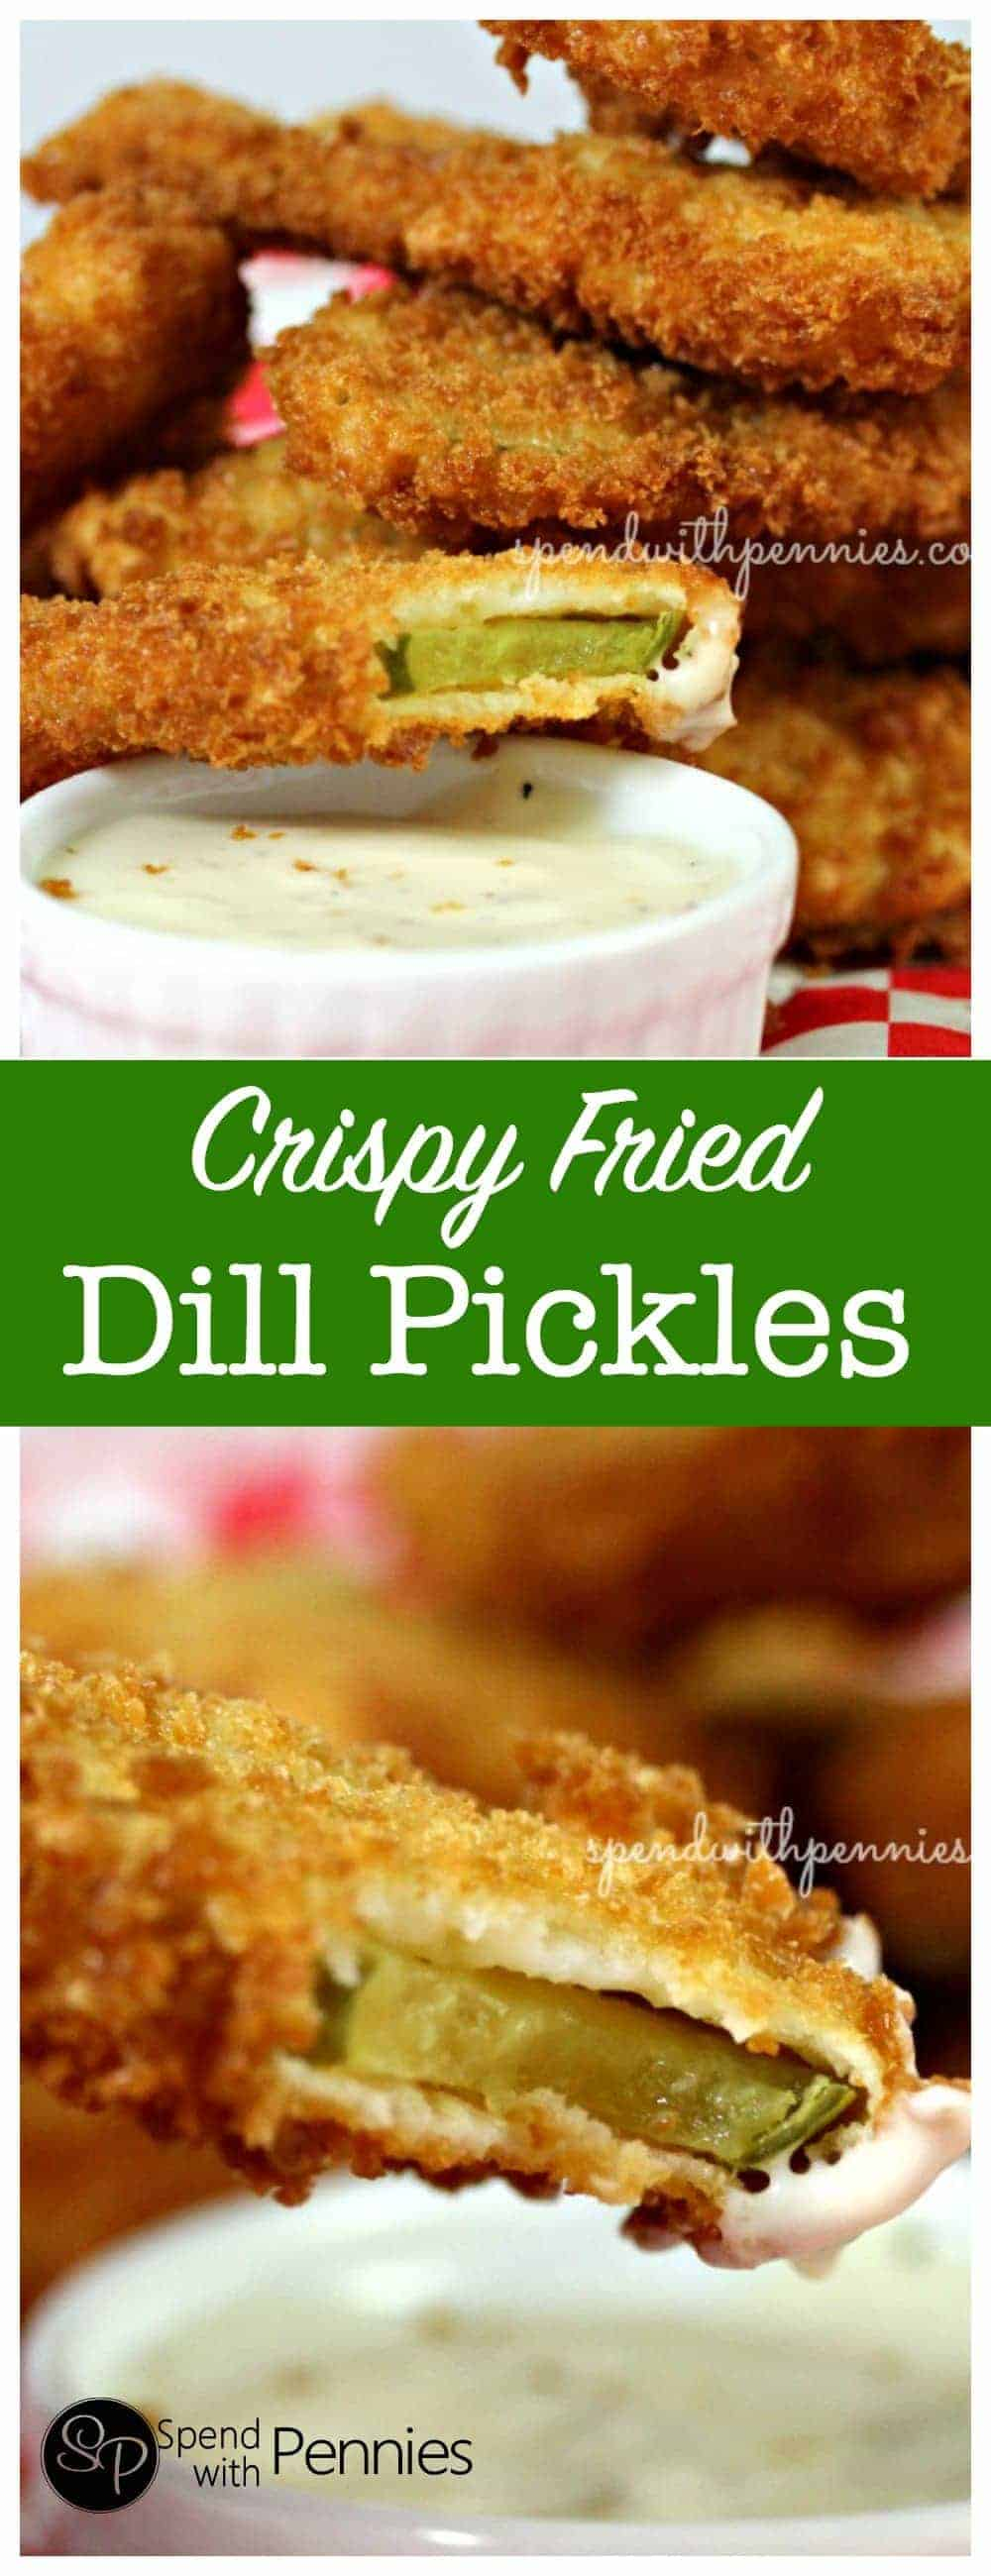 Crispy Deep Fried Pickles!! If you've never tried these, they have to go on your MUST TRY list! <3 Delicious!